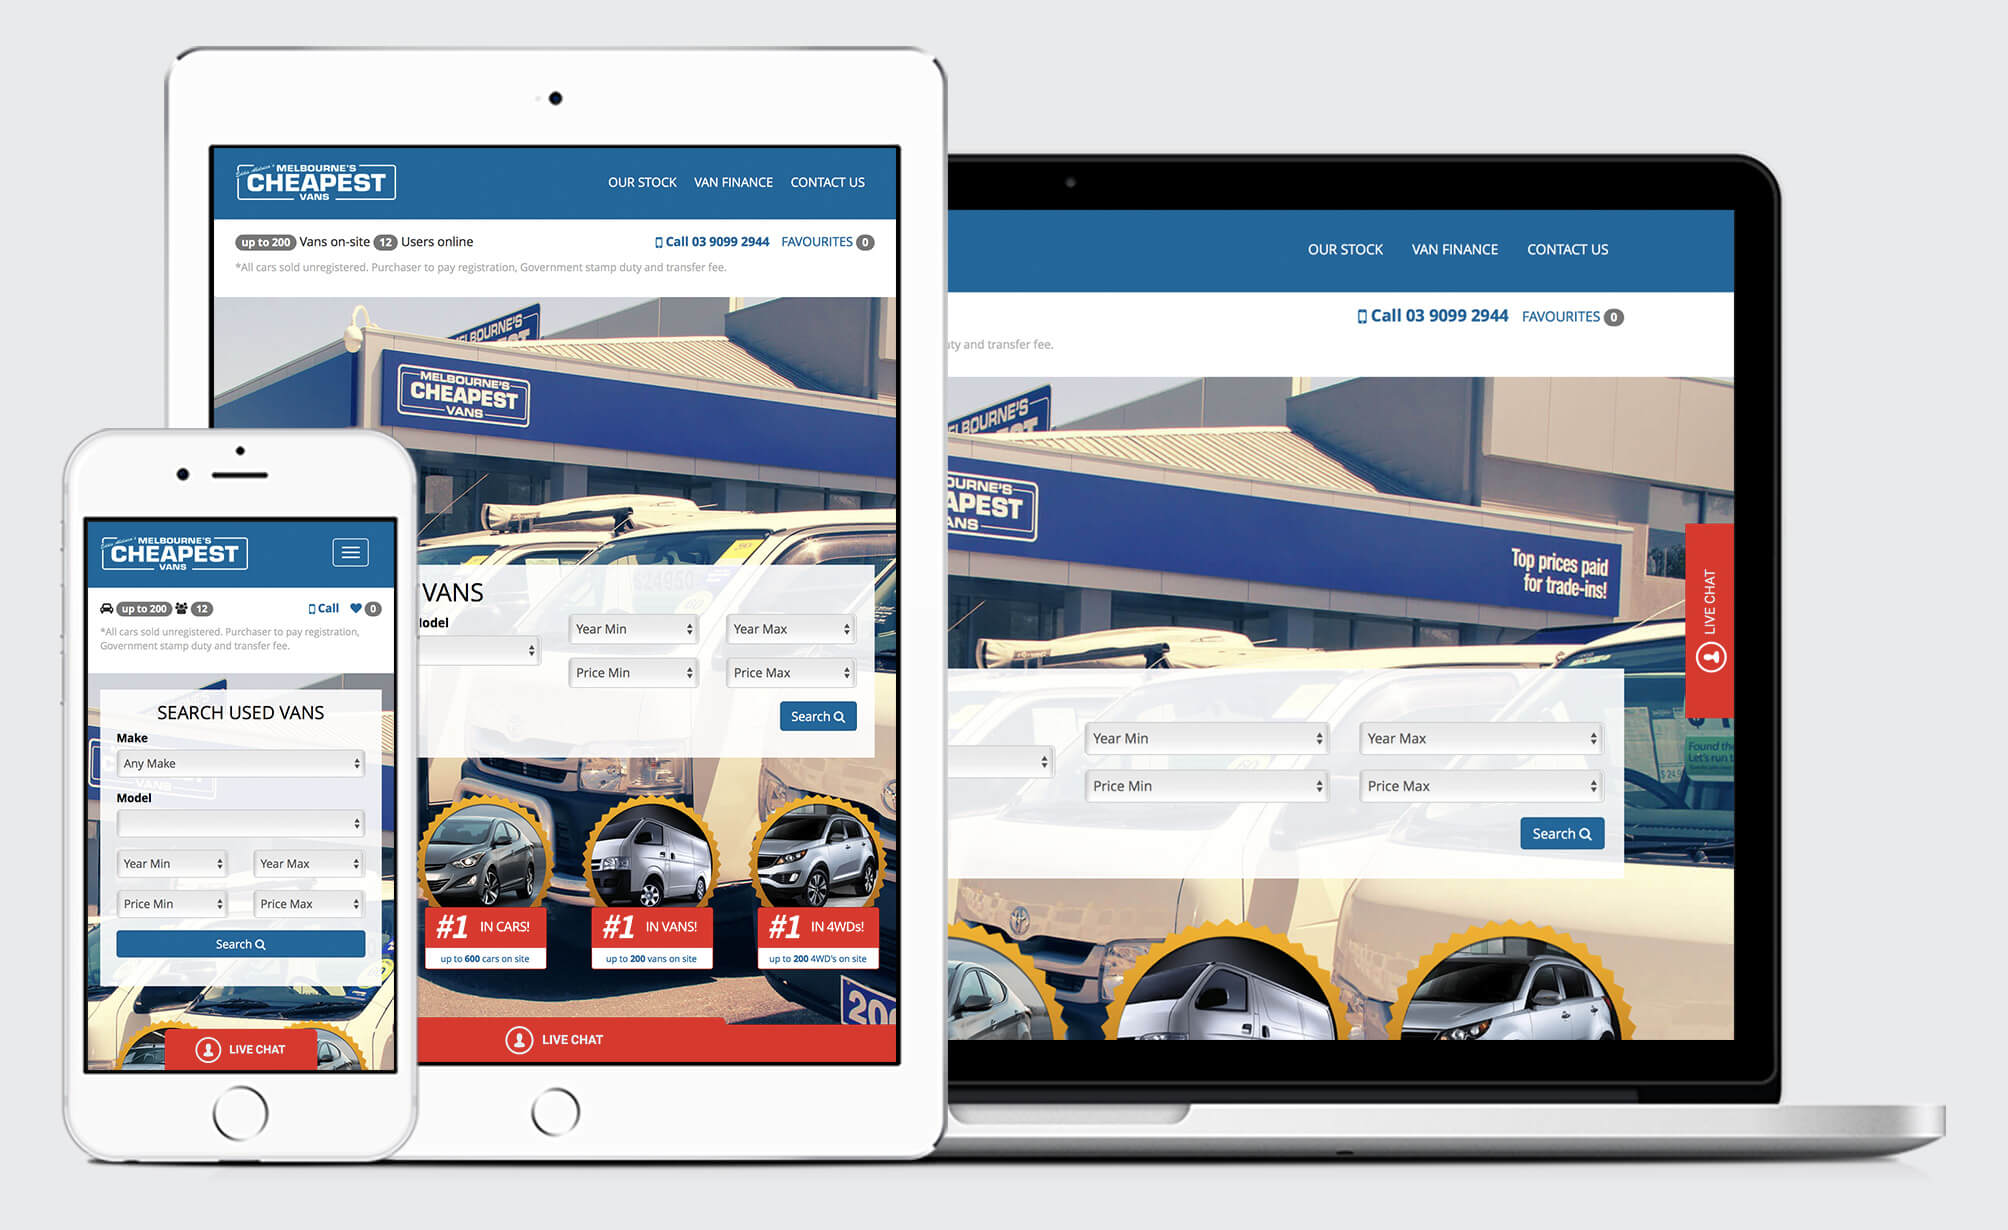 Melbourne's Cheapest Vans WordPress responsive website design